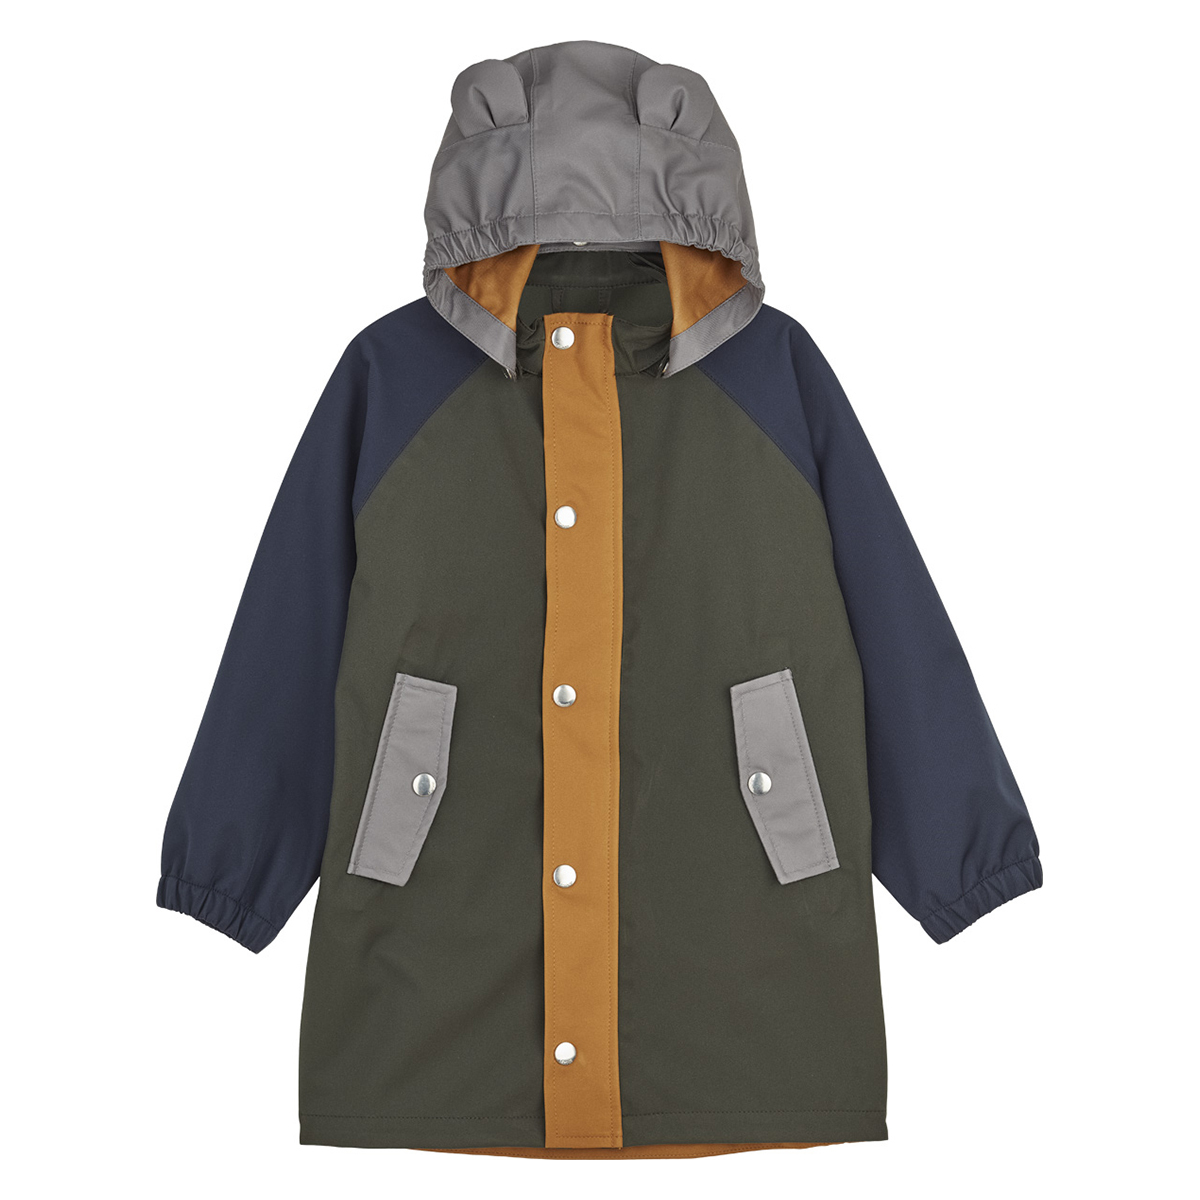 Haut bébé Imperméable Blake Hunter Green Multi Mix - 12 Mois Imperméable Blake Hunter Green Multi Mix - 12 Mois